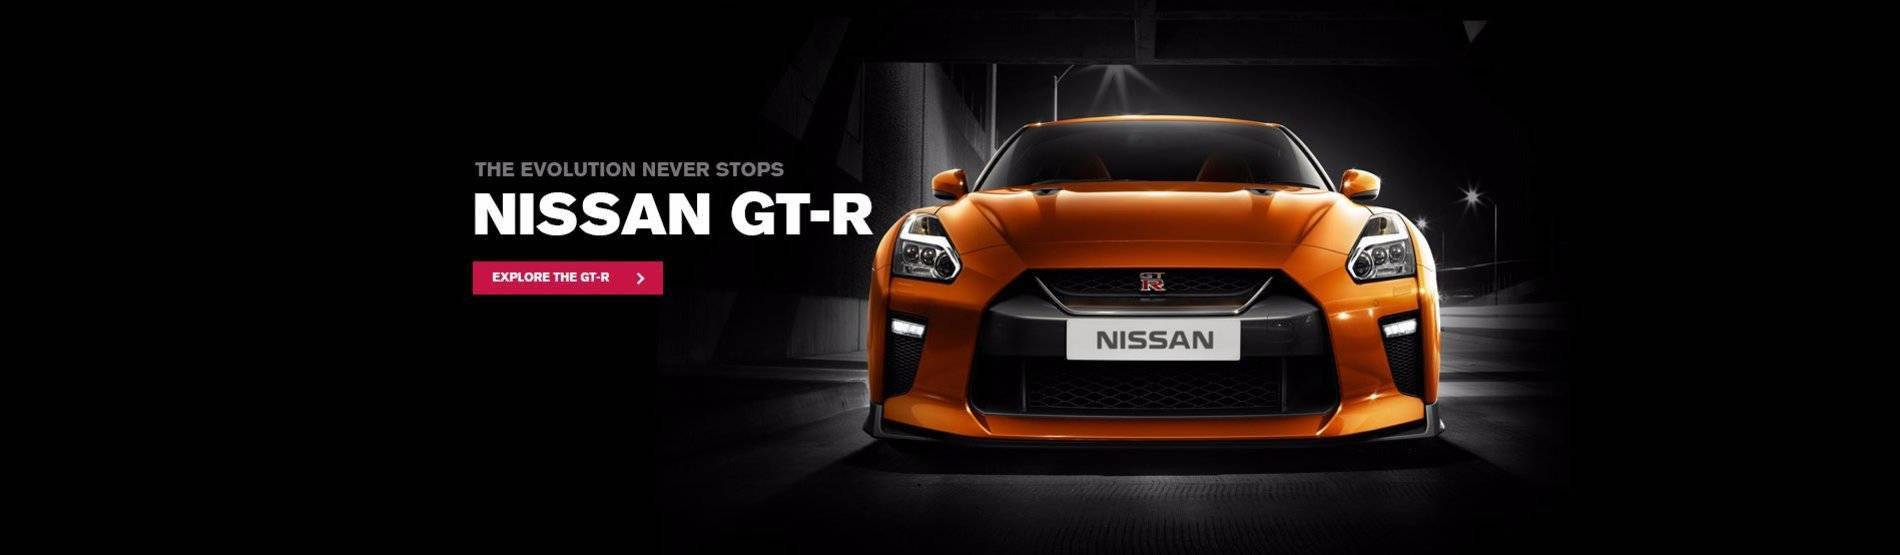 GT-R Now at City Nissan